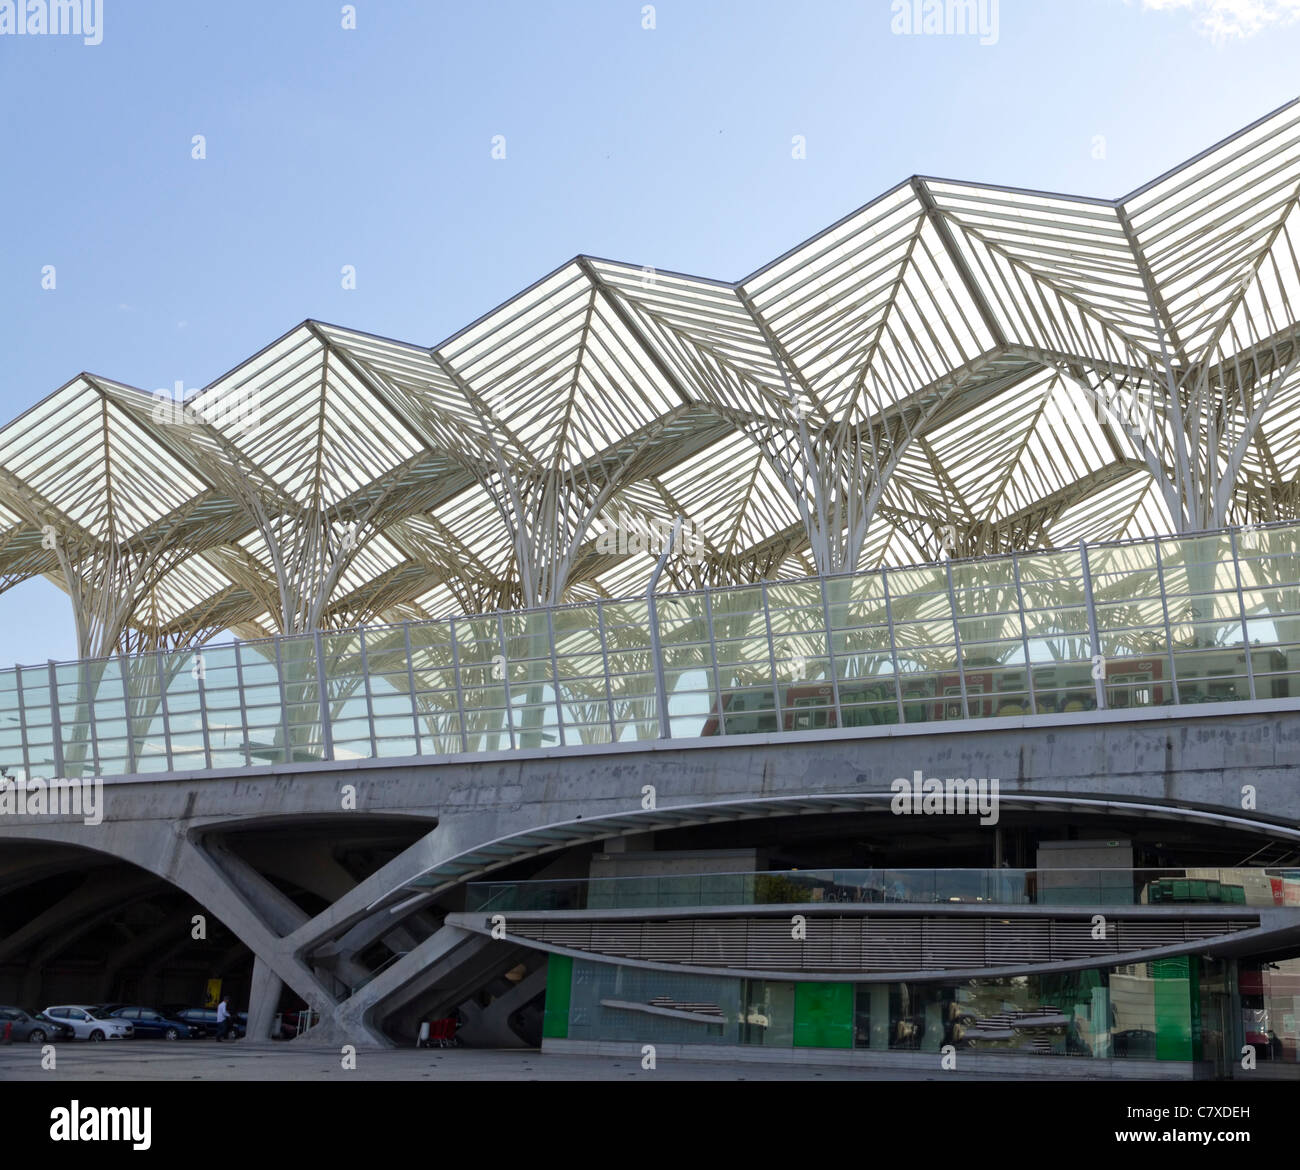 modern architecture of railway station Gare do Oriente built for Expo '98 world's fair in Parque das Nacoes - Stock Image